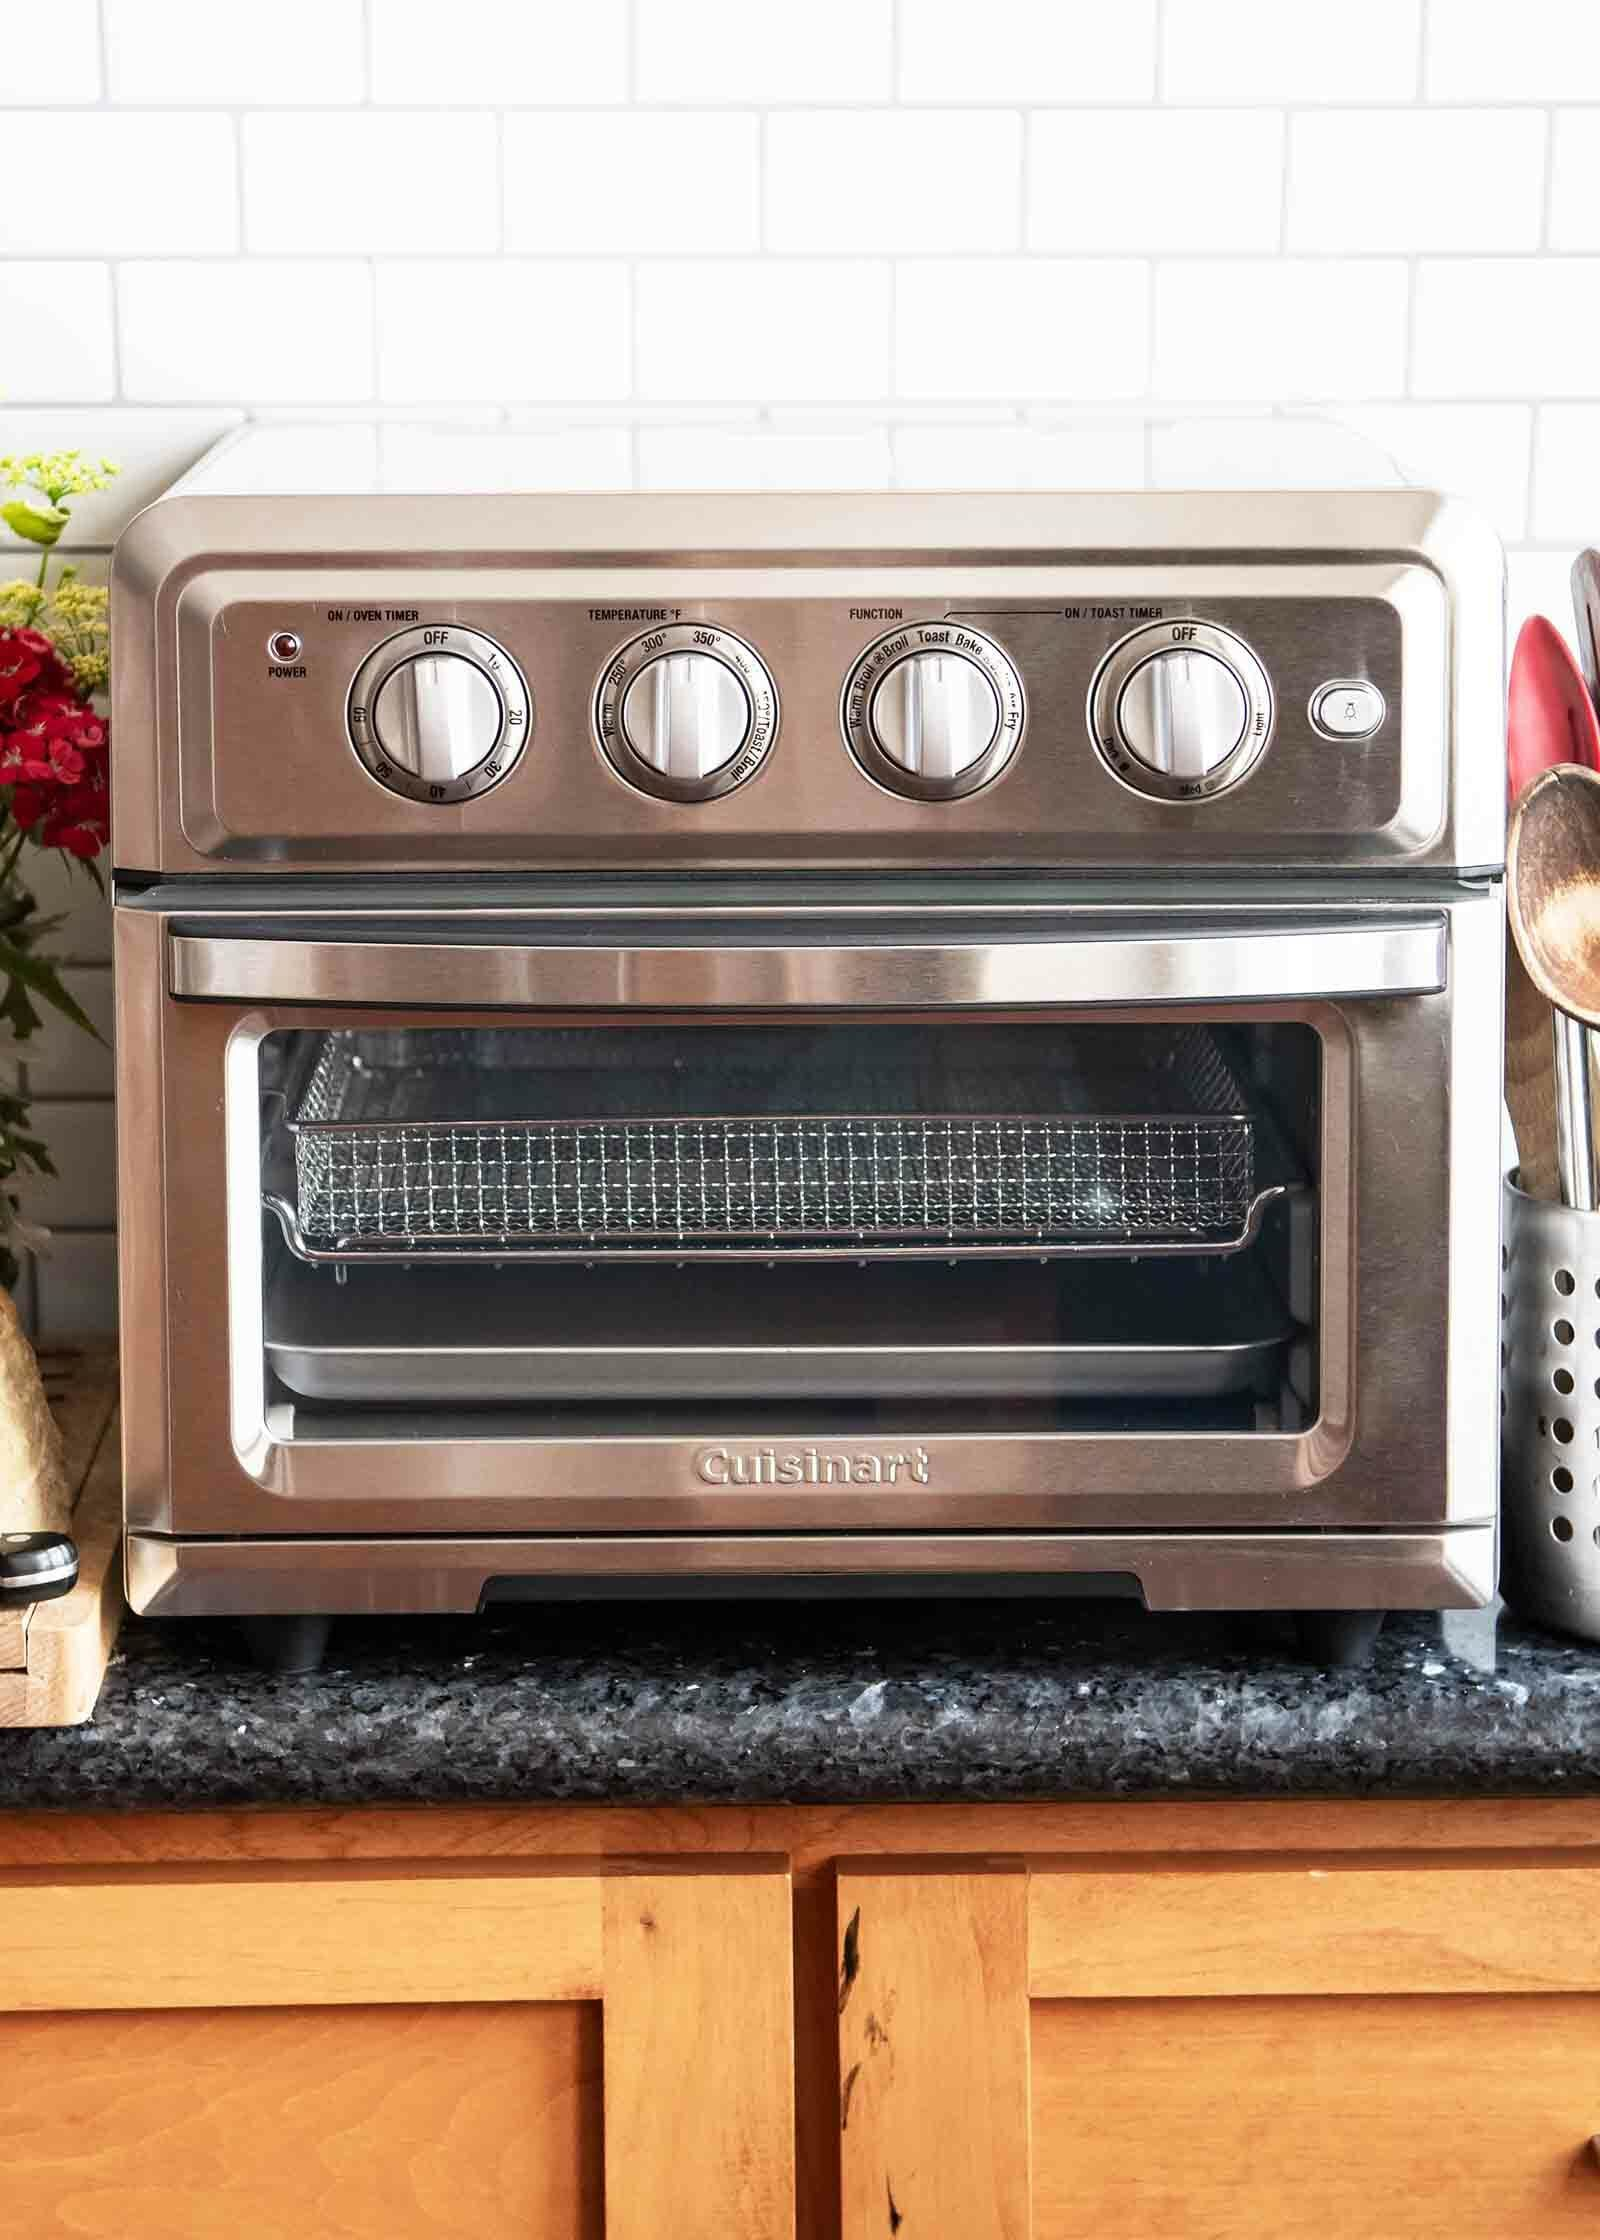 Say Hello To The New Air Fryer Toaster Oven From Cuisinart Simplyrecipes Com Toaster Oven Recipes Toaster Oven Oven Recipes